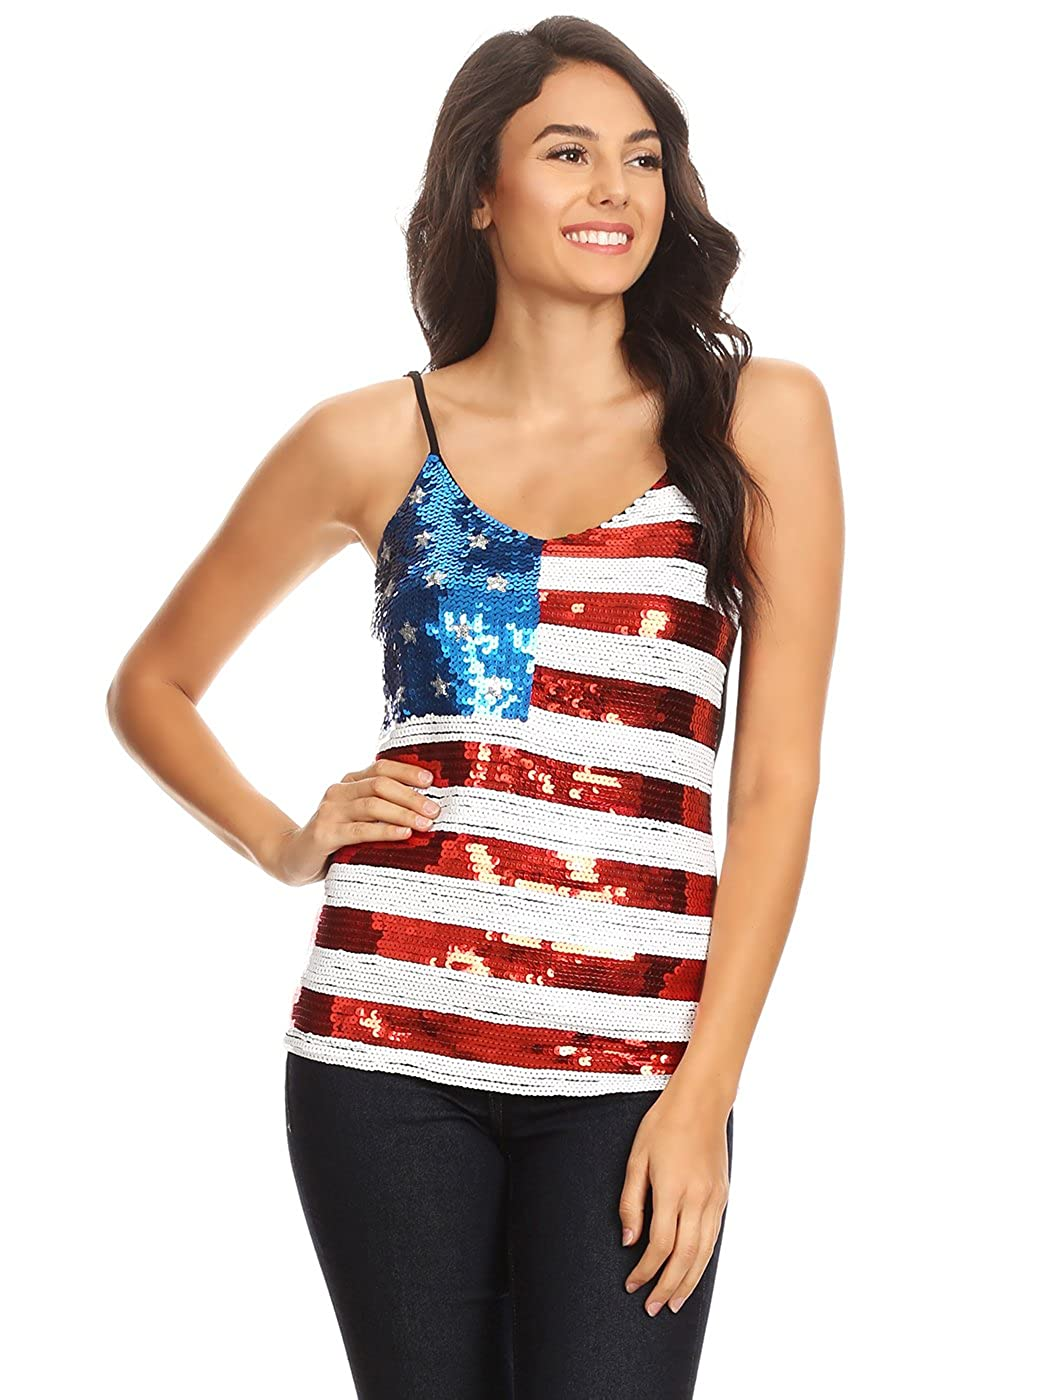 290d866c786d8d Anna-Kaci Womens Patriotic USA Flag American Sequin V Neck Cami Tank Top at  Amazon Women's Clothing store: